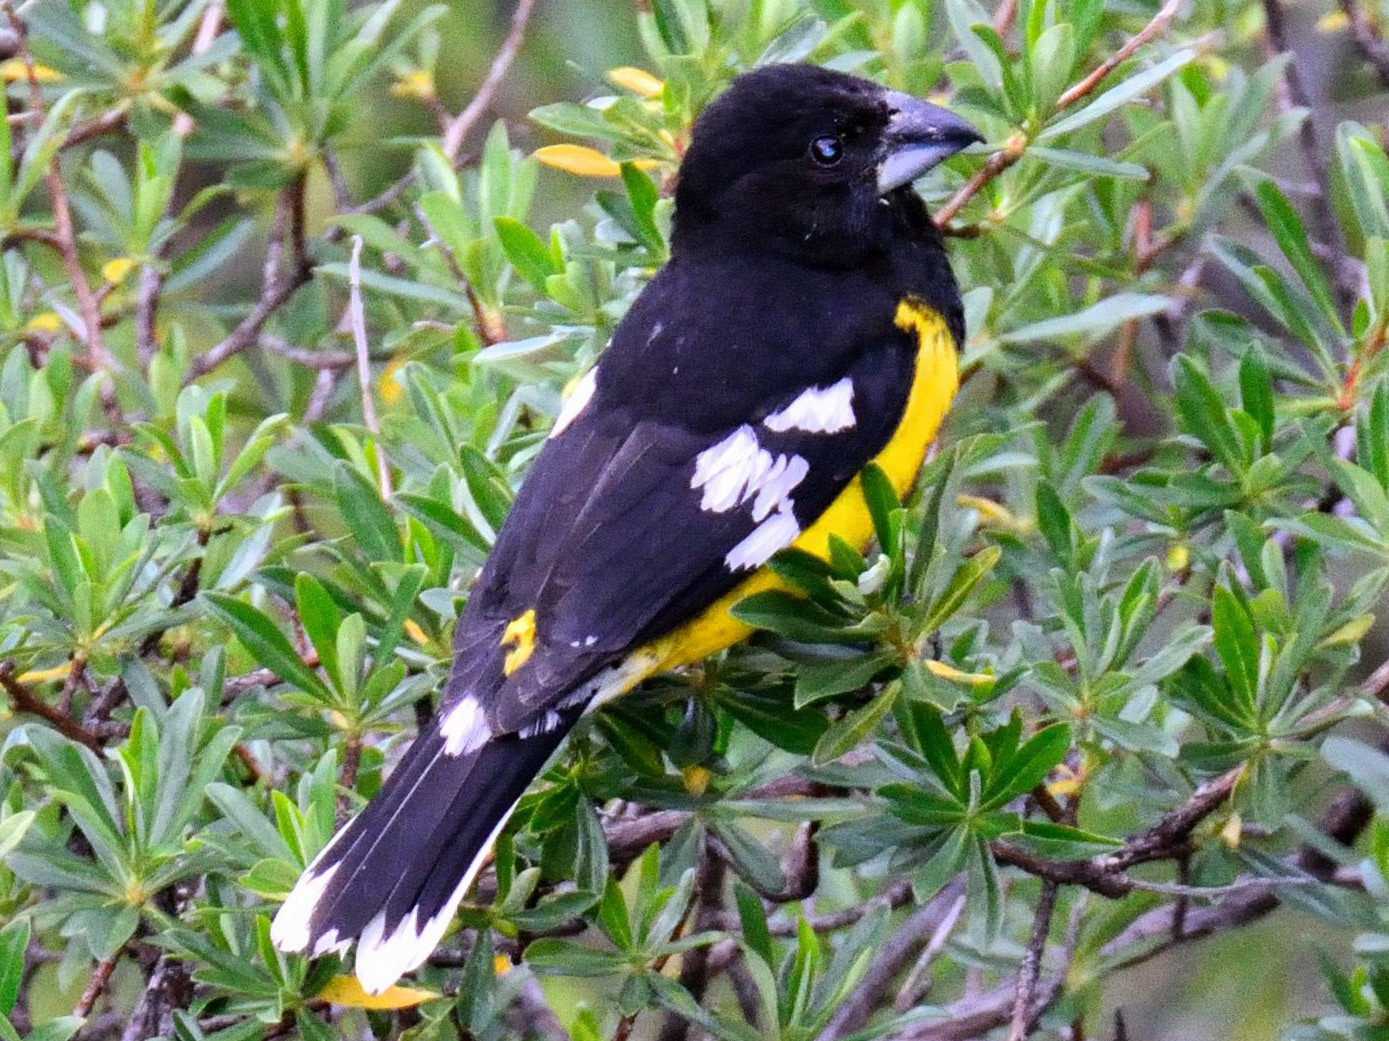 Black-backed Grosbeak - Ulrich Menzel